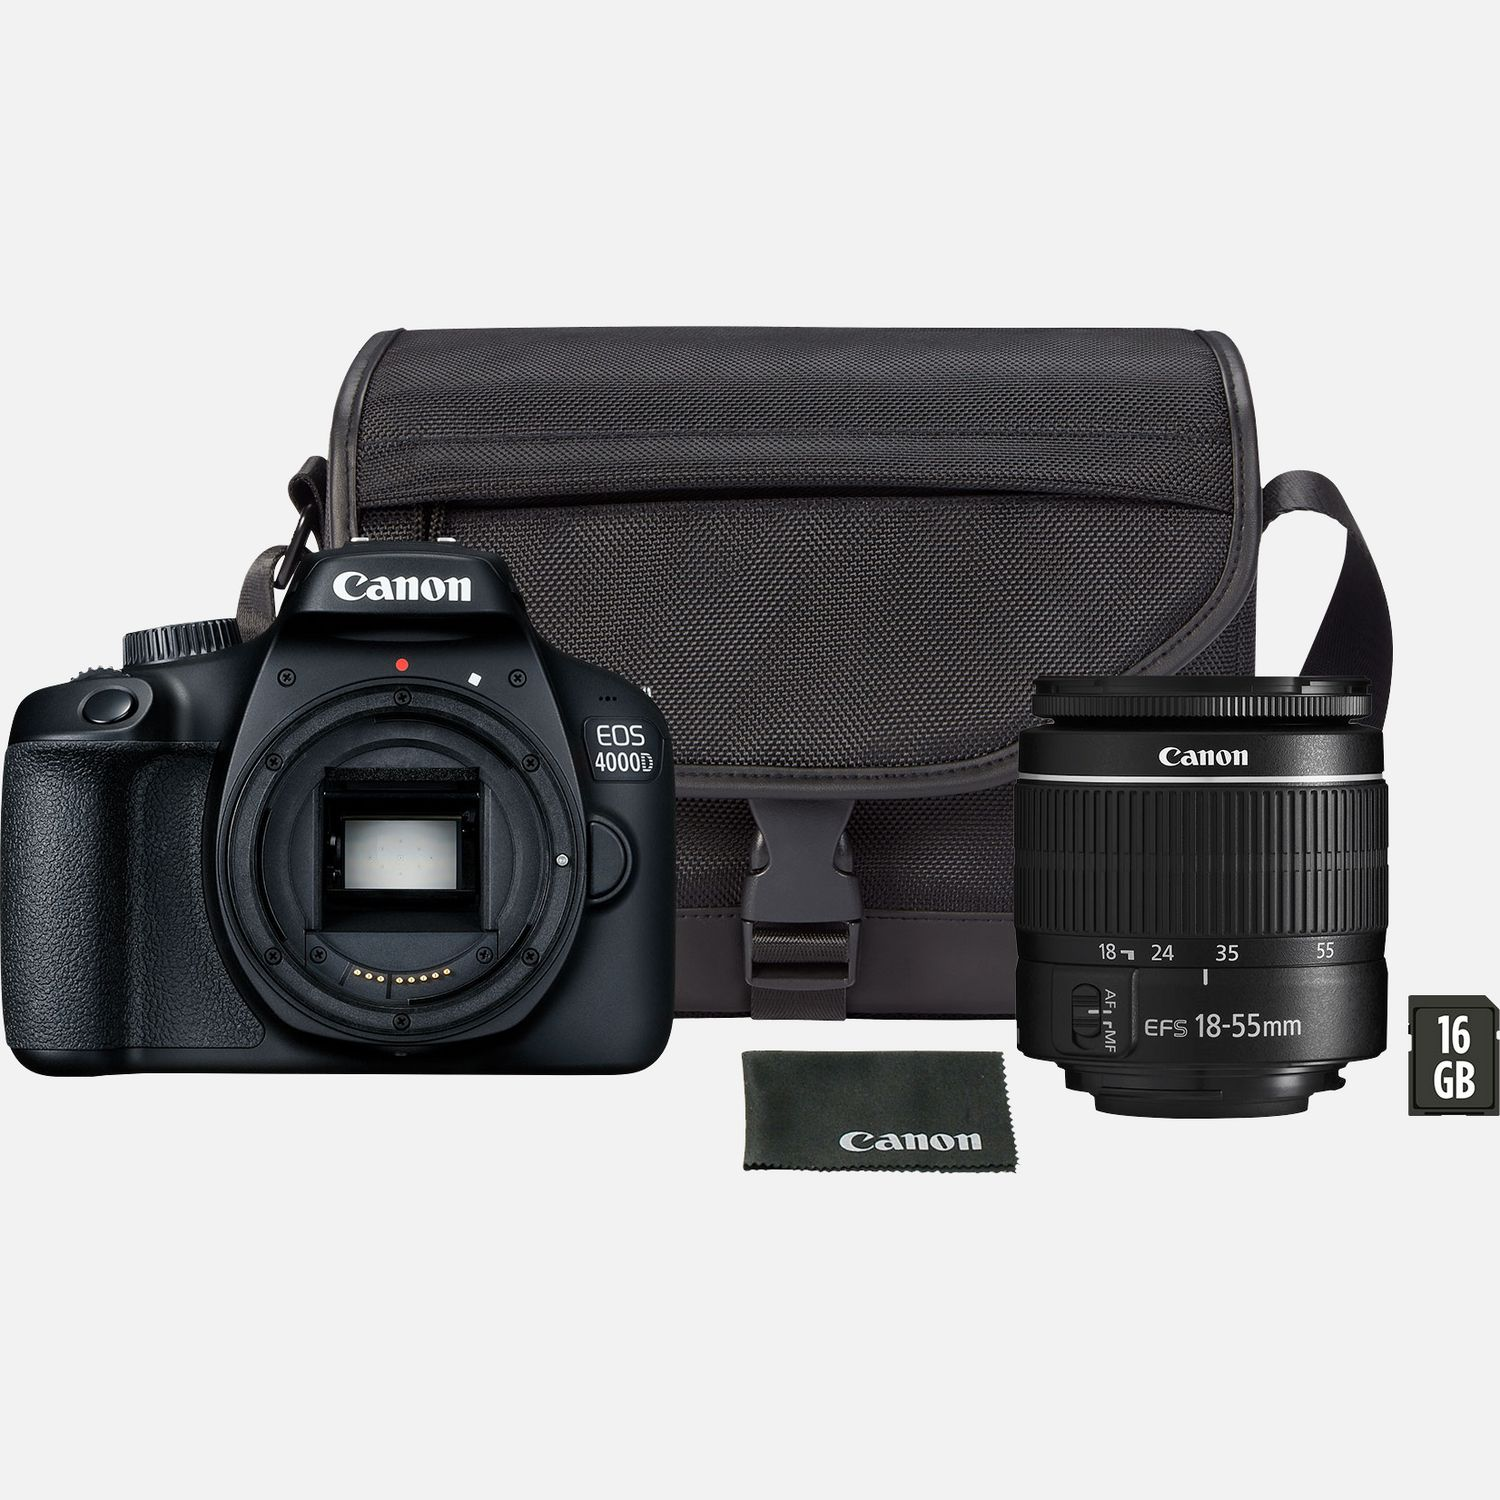 Image of Canon EOS 4000D Black + EF-S 18-55mm III Lens + Bag + SD Card